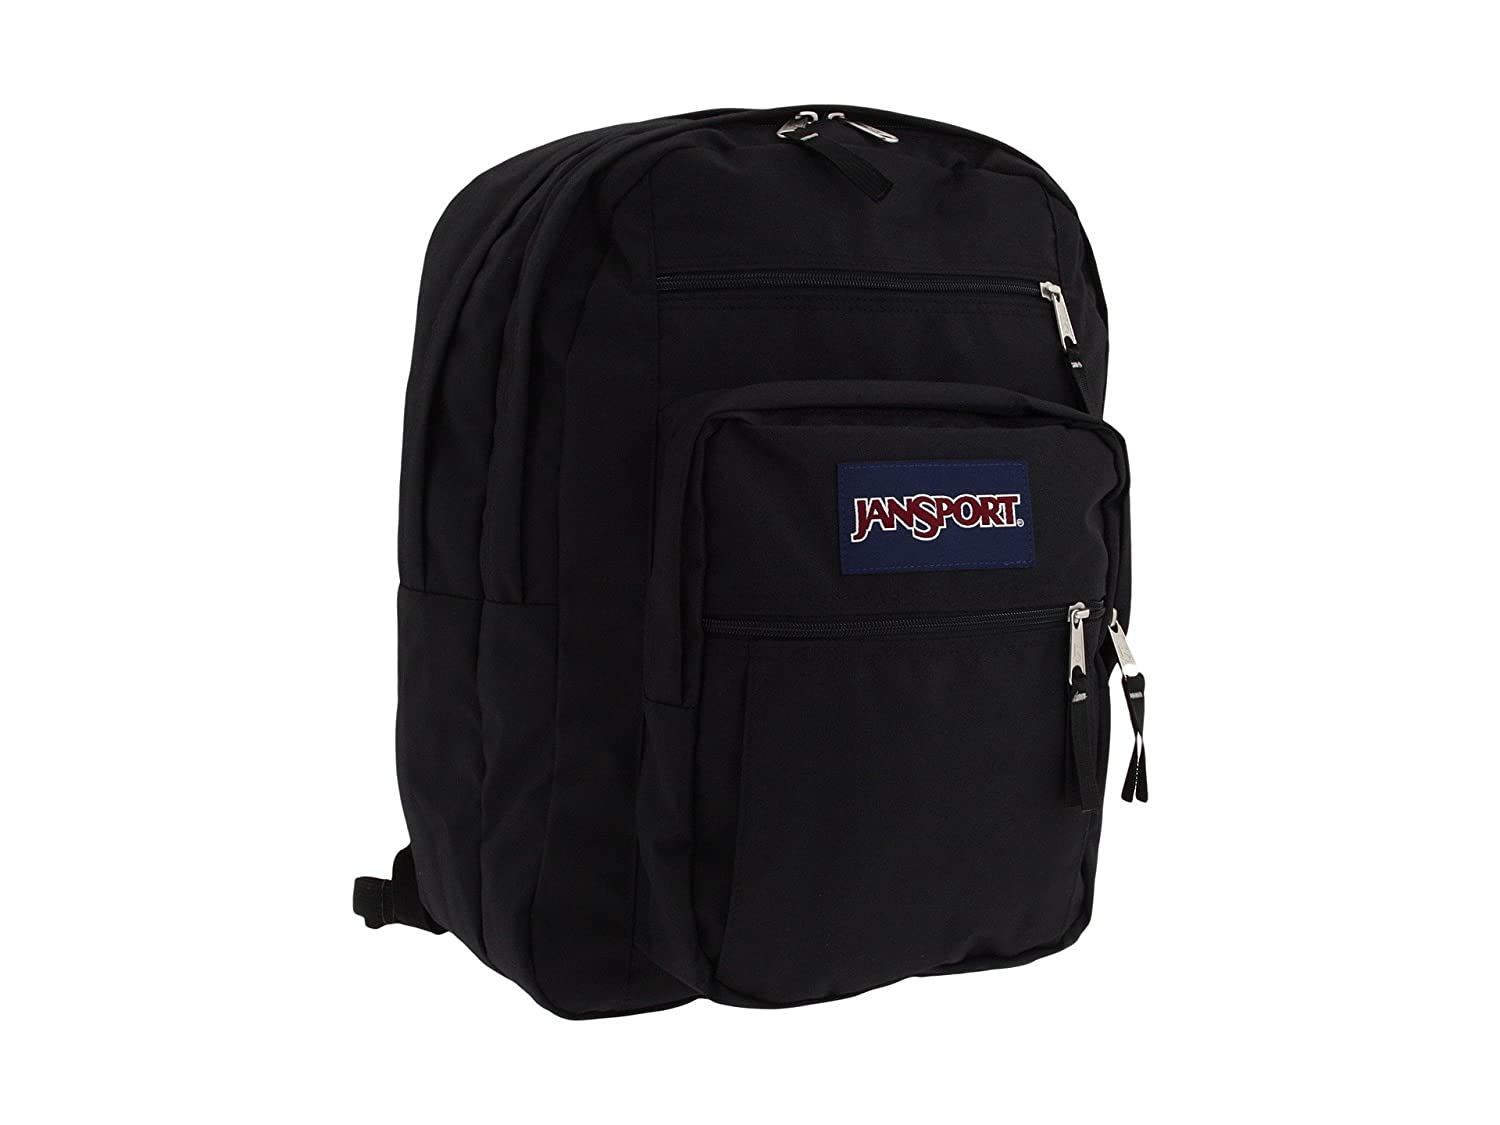 Totally Black JanSport Rucksack Big Student Asphalt wild at heart One Size